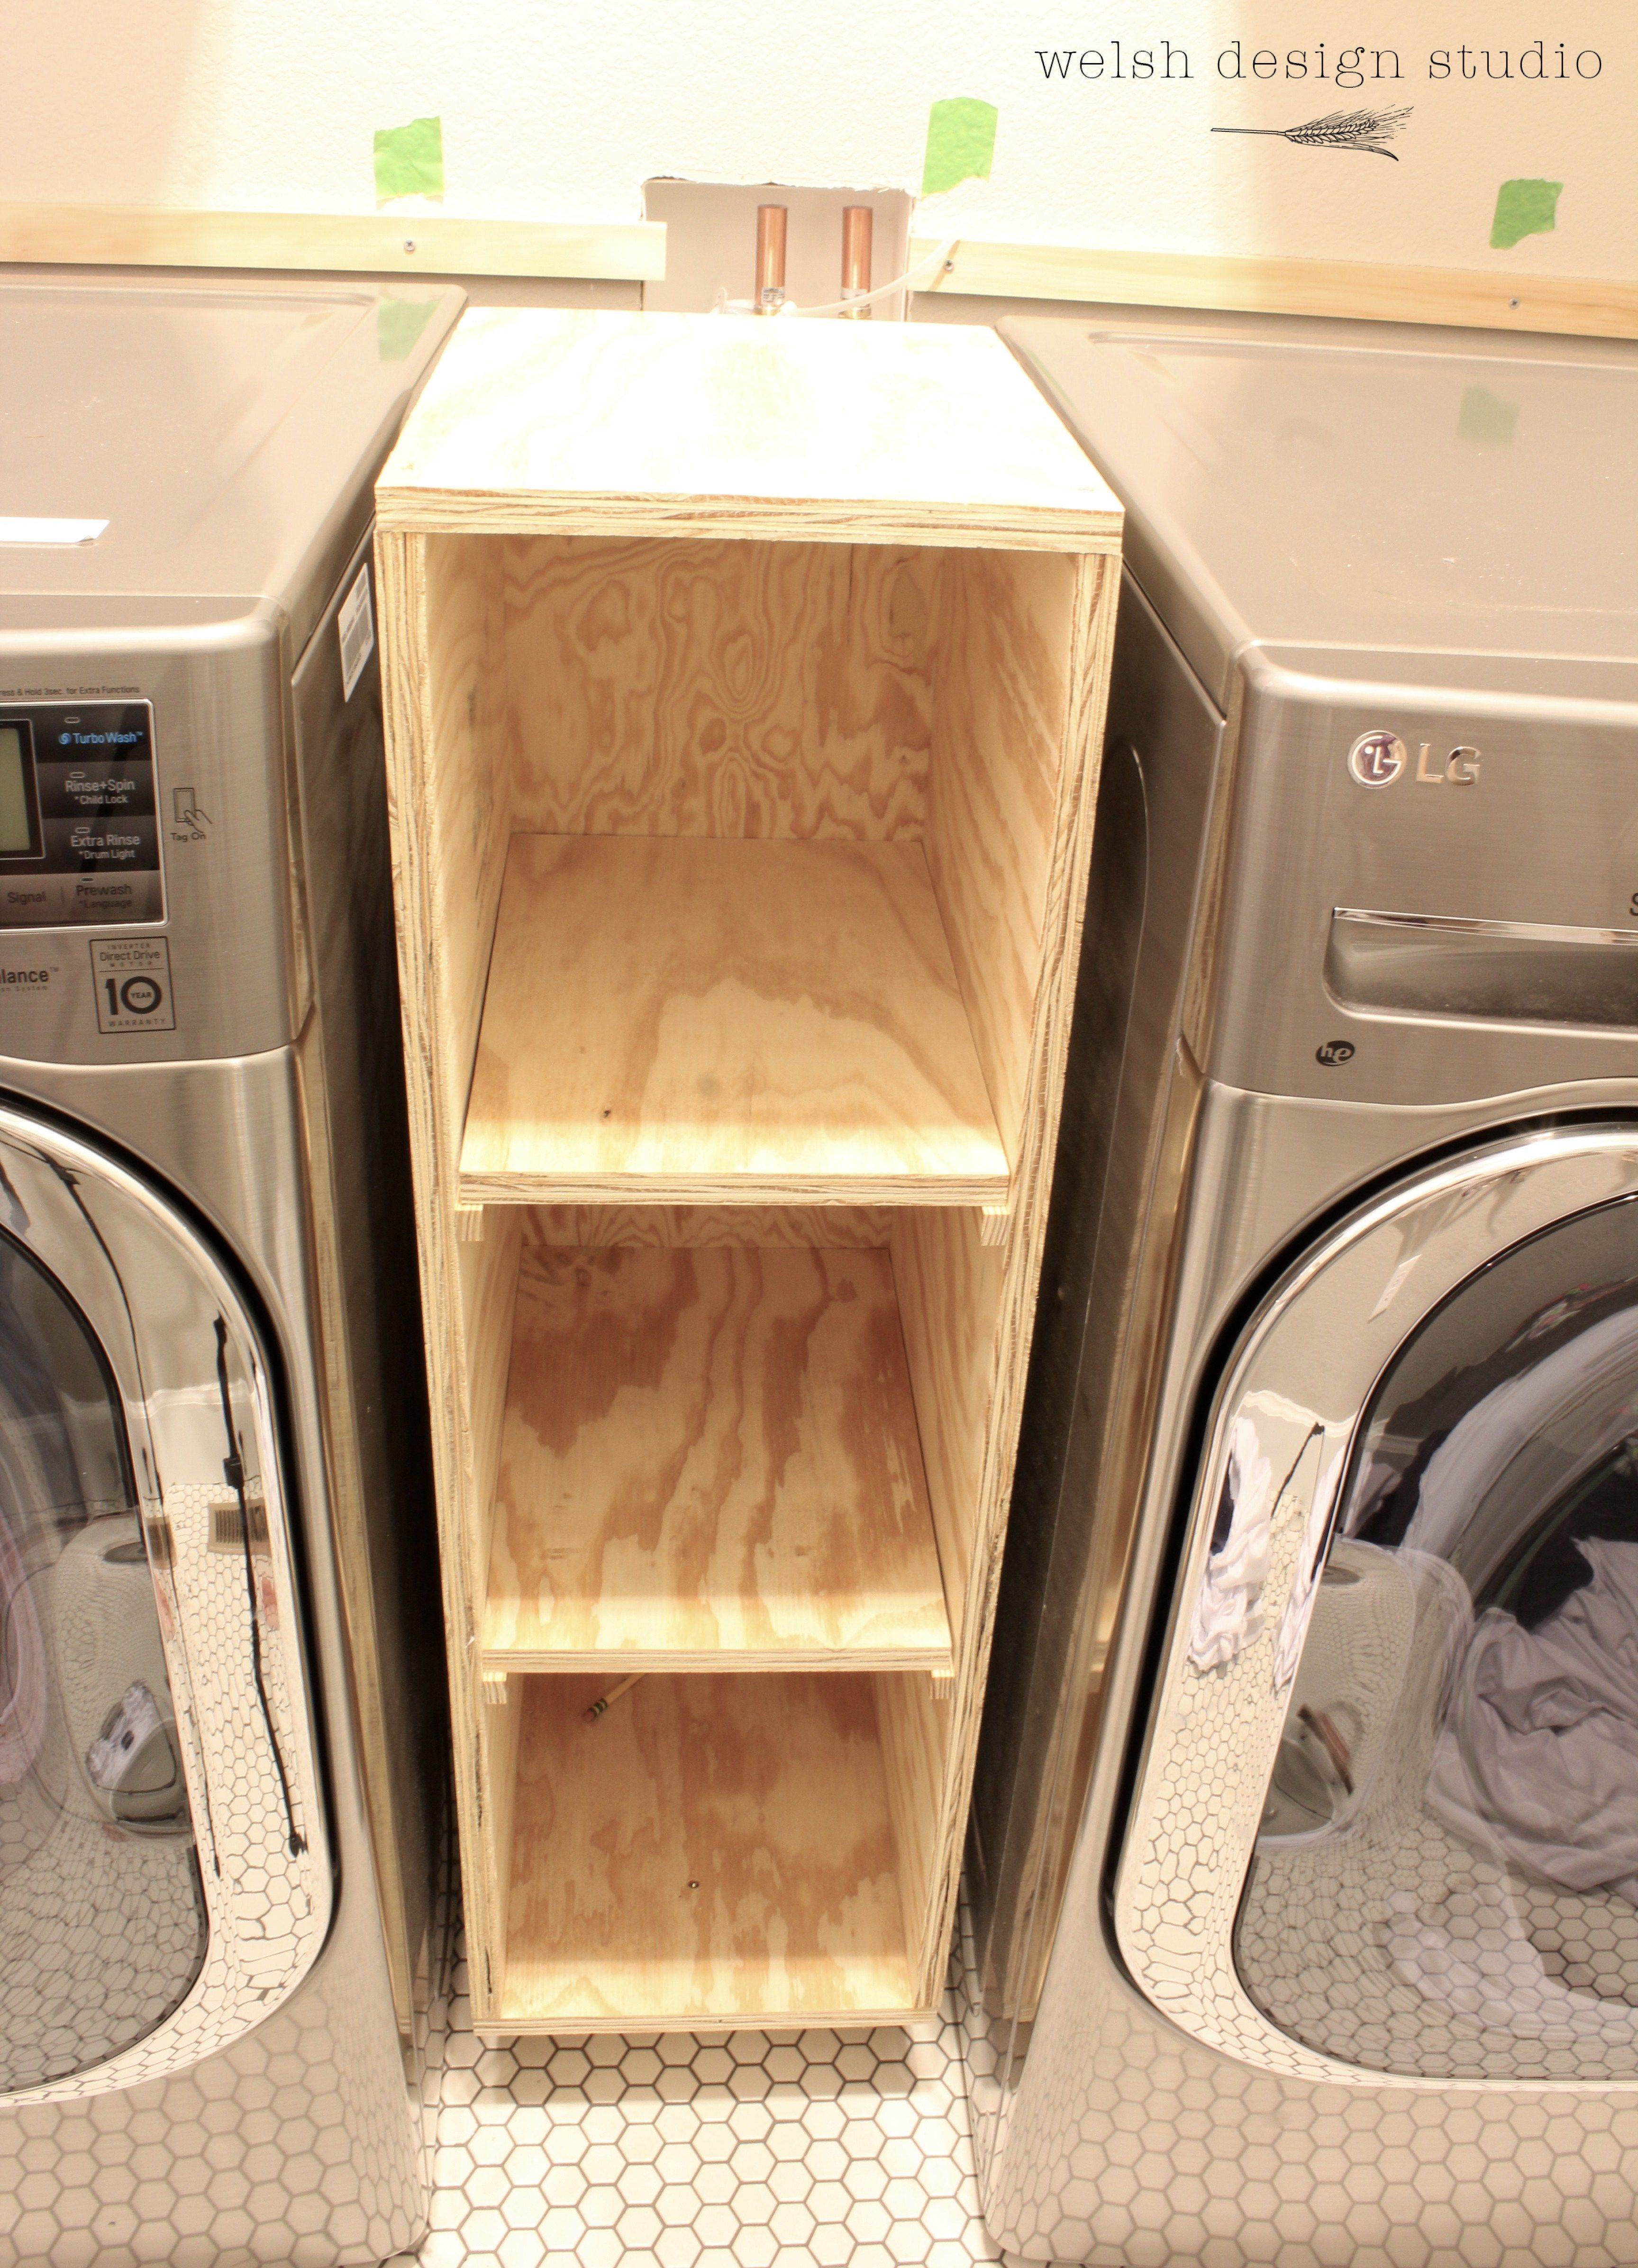 Laundry Room Cabinet Between Washer And Dryer Laundry Room Diy Small Laundry Room Organization Laundry Room Storage Shelves